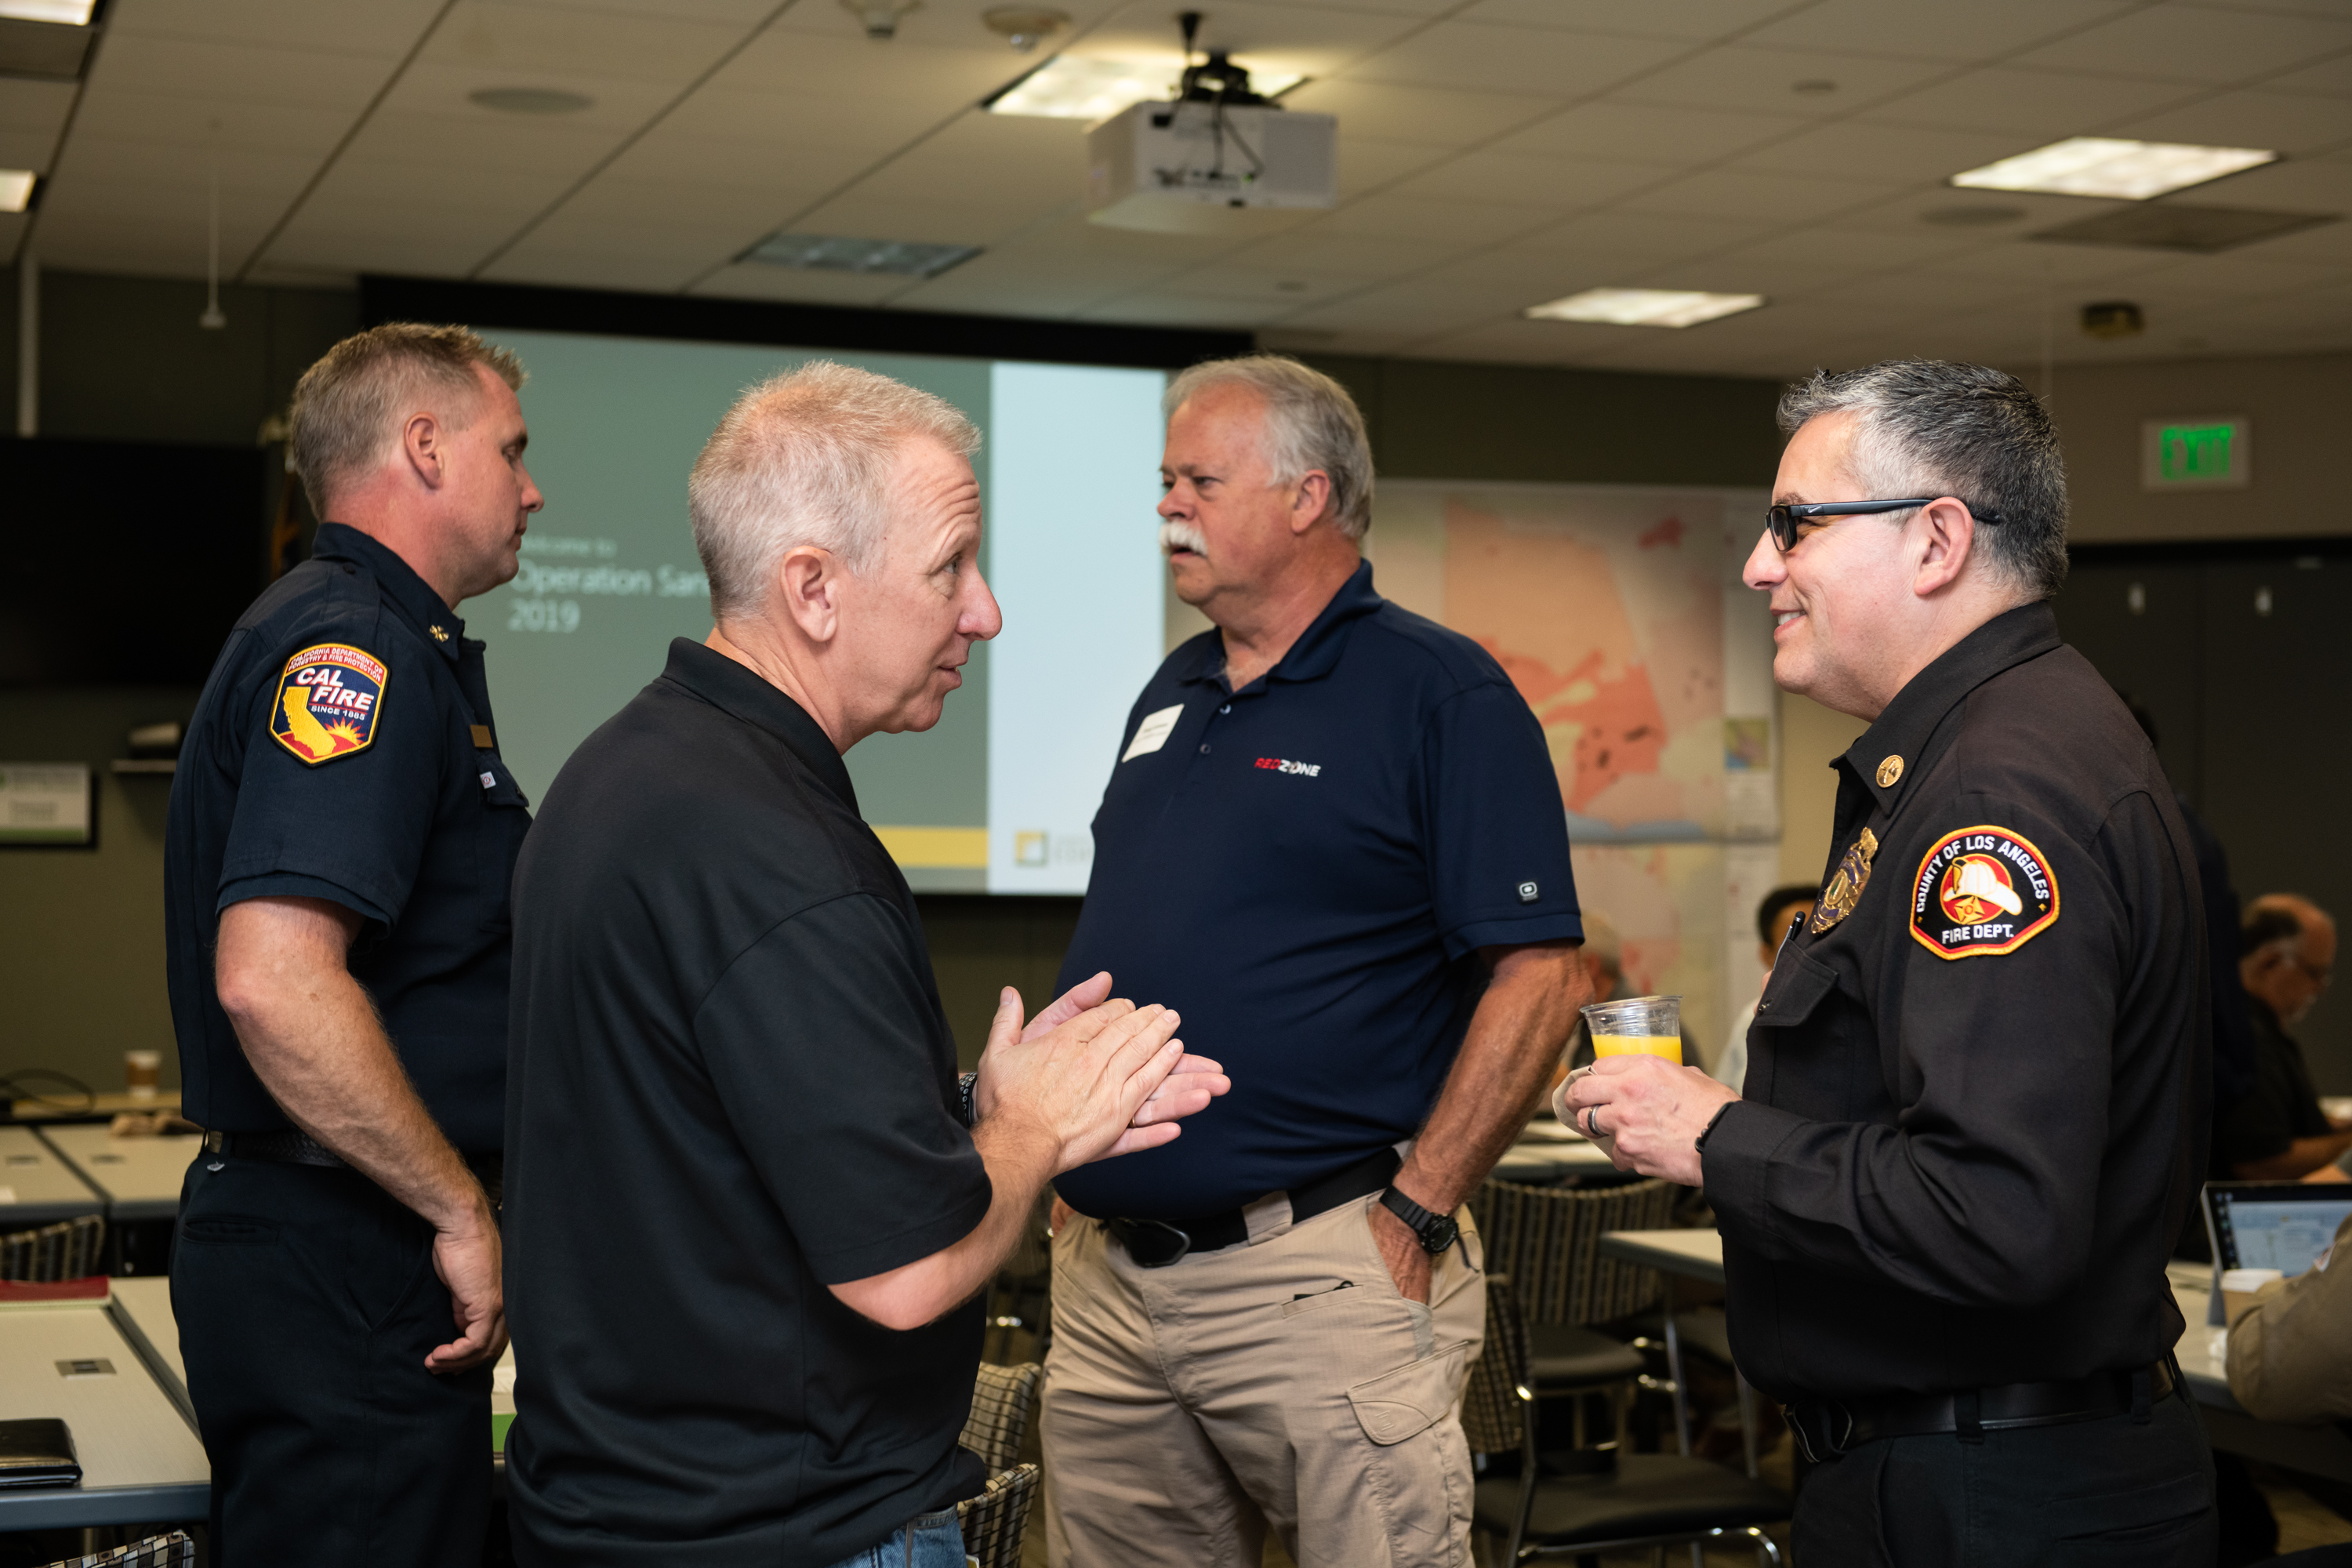 Troy Whitman, SCE Fire Management Officer discusses 'Operation Santa Ana' with J. Lopez,  Assistant Chief, L.A. County Fire Department